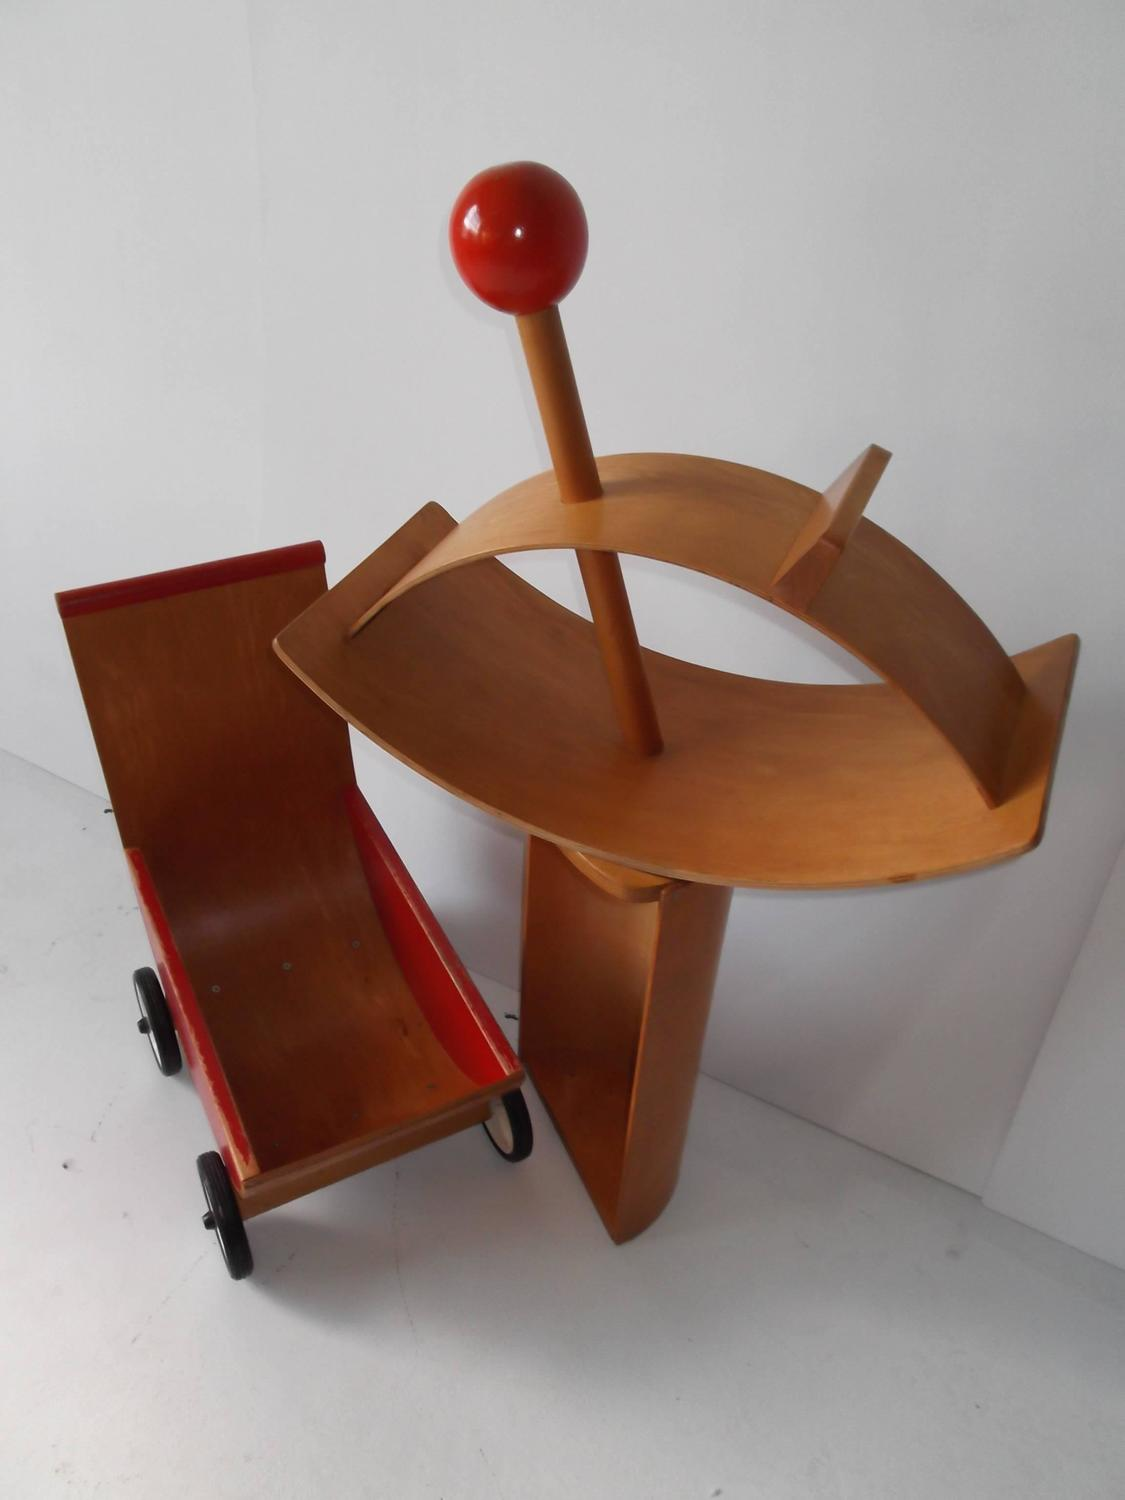 rocking chair cradle swimming pool chairs and tables creative playthings bentwood lot of child 39s toys